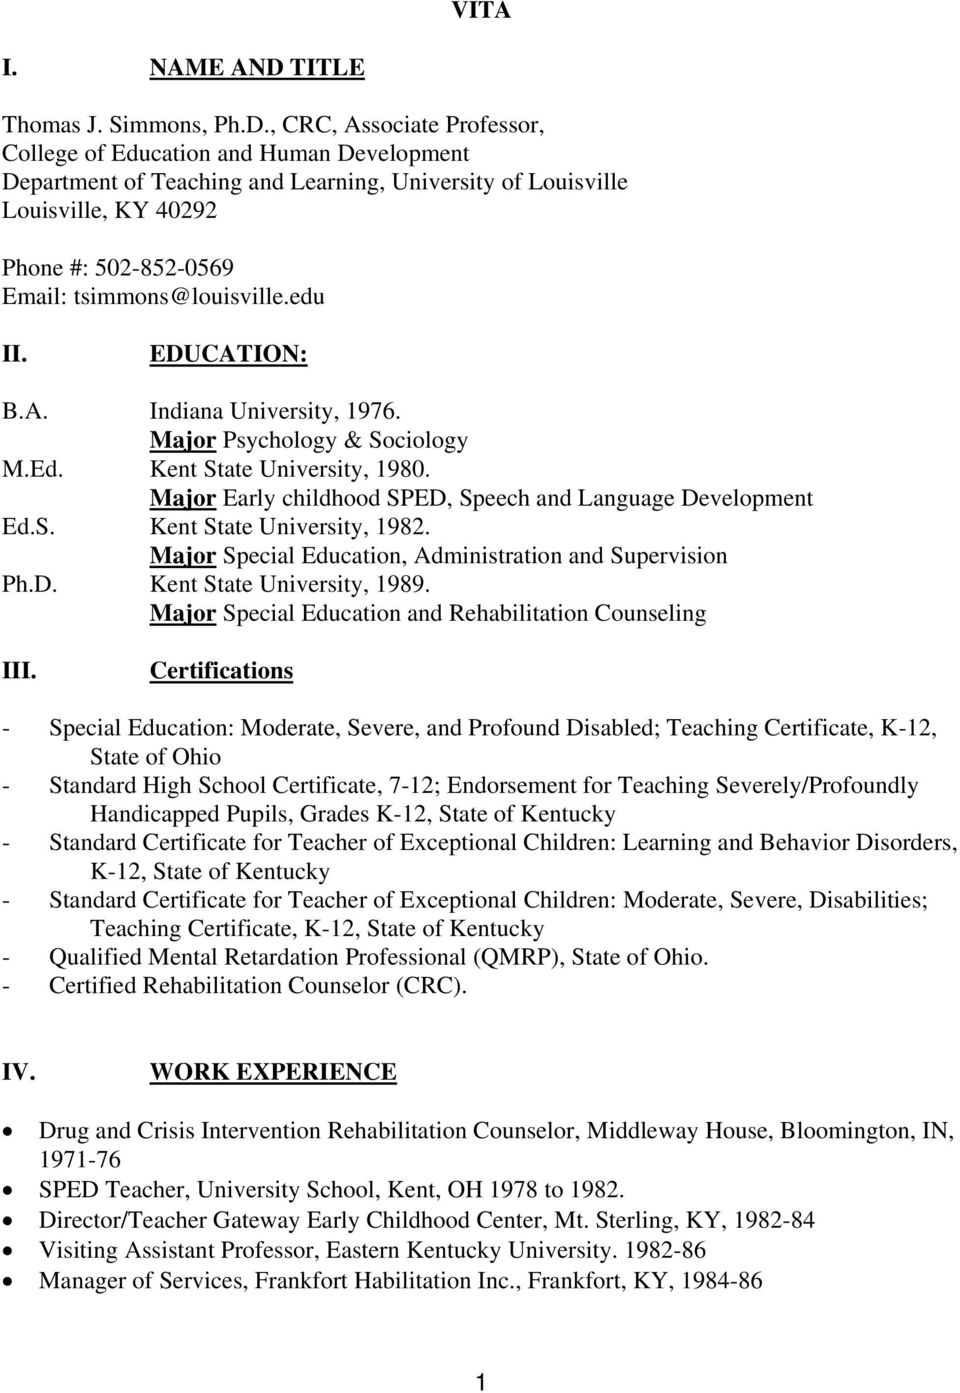 , CRC, Associate Professor, College of Education and Human Development Department of Teaching and Learning, University of Louisville Louisville, KY 40292 Phone #: 502-852-0569 Email: